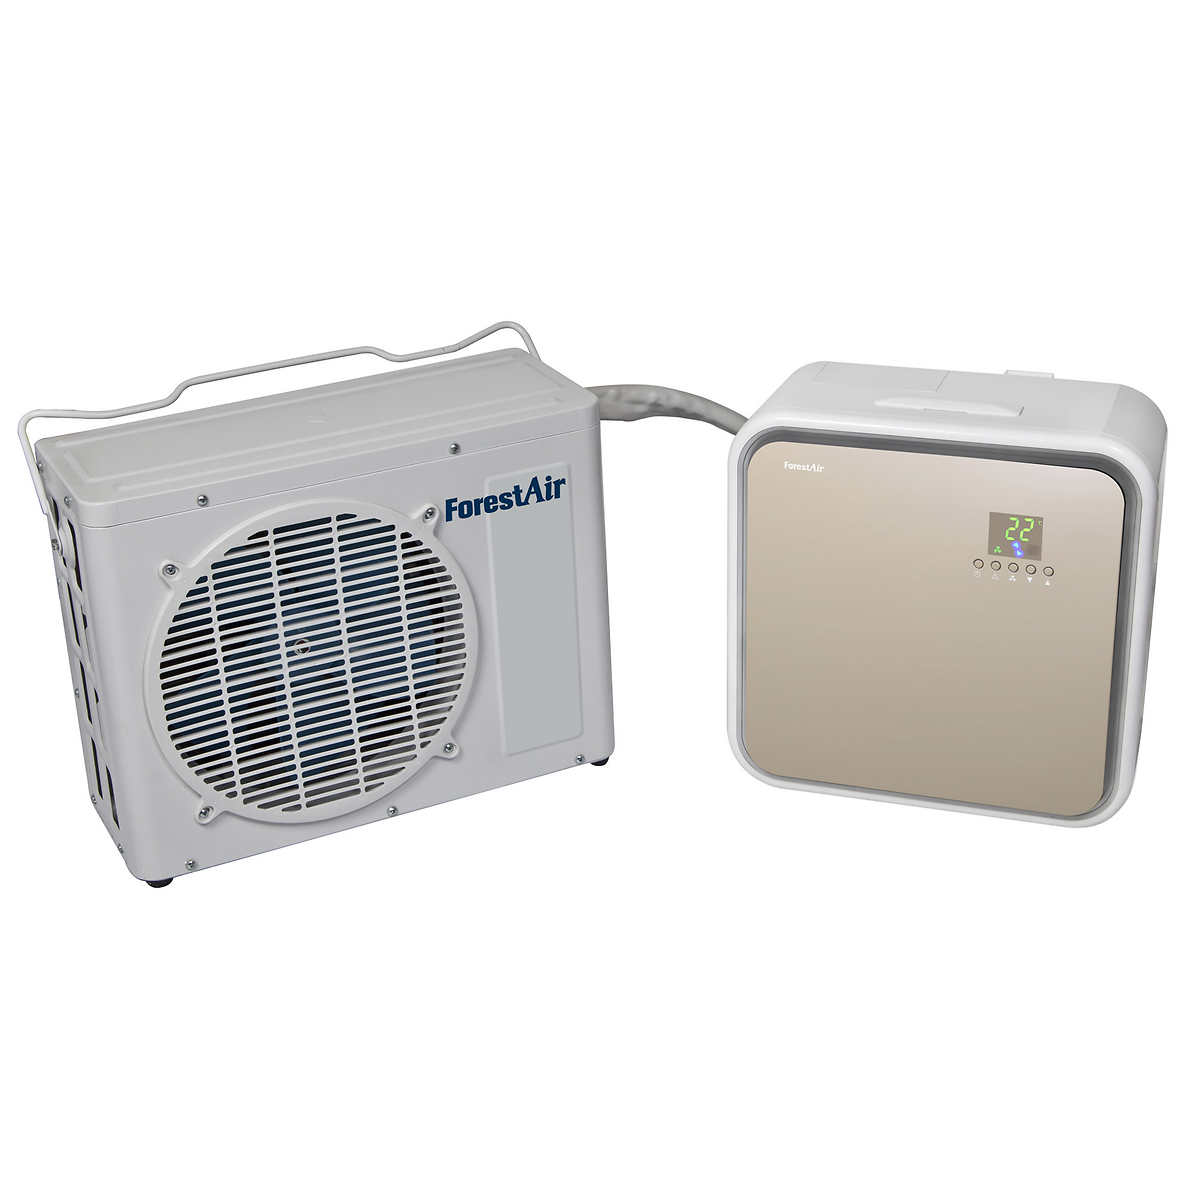 Image result for air-conditioner